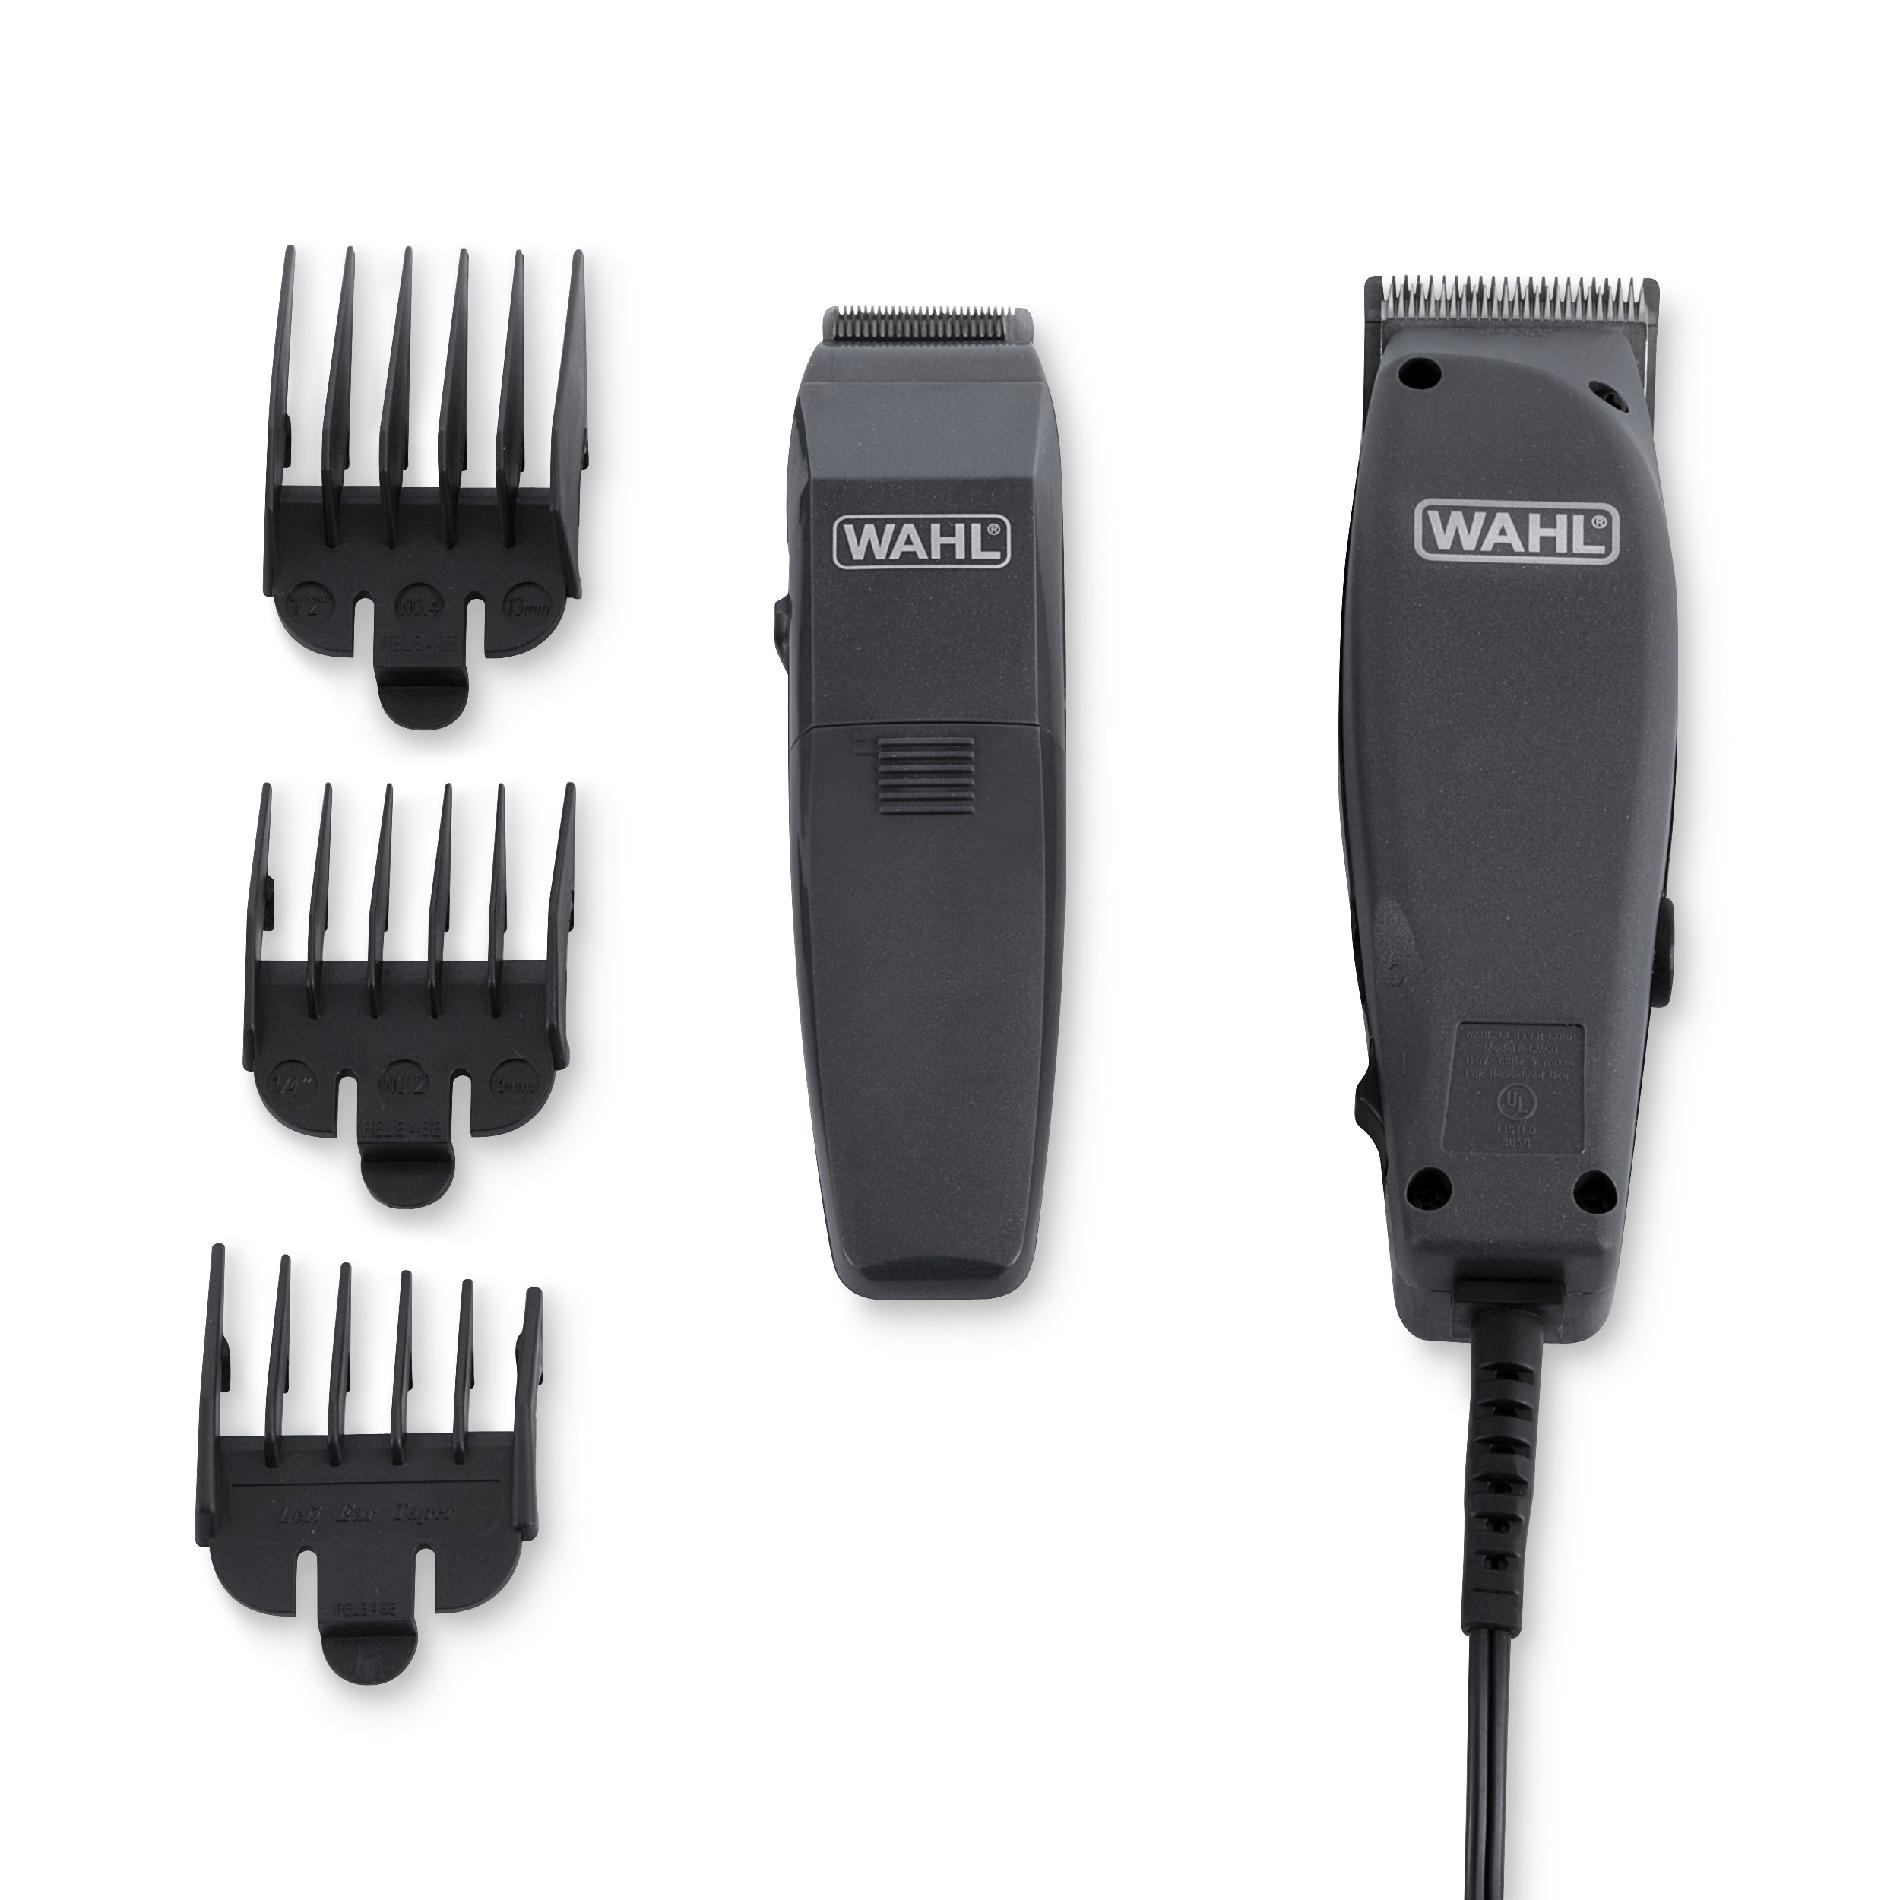 Wahl Combo Pro Haircut Kit, Complete, 1 kit